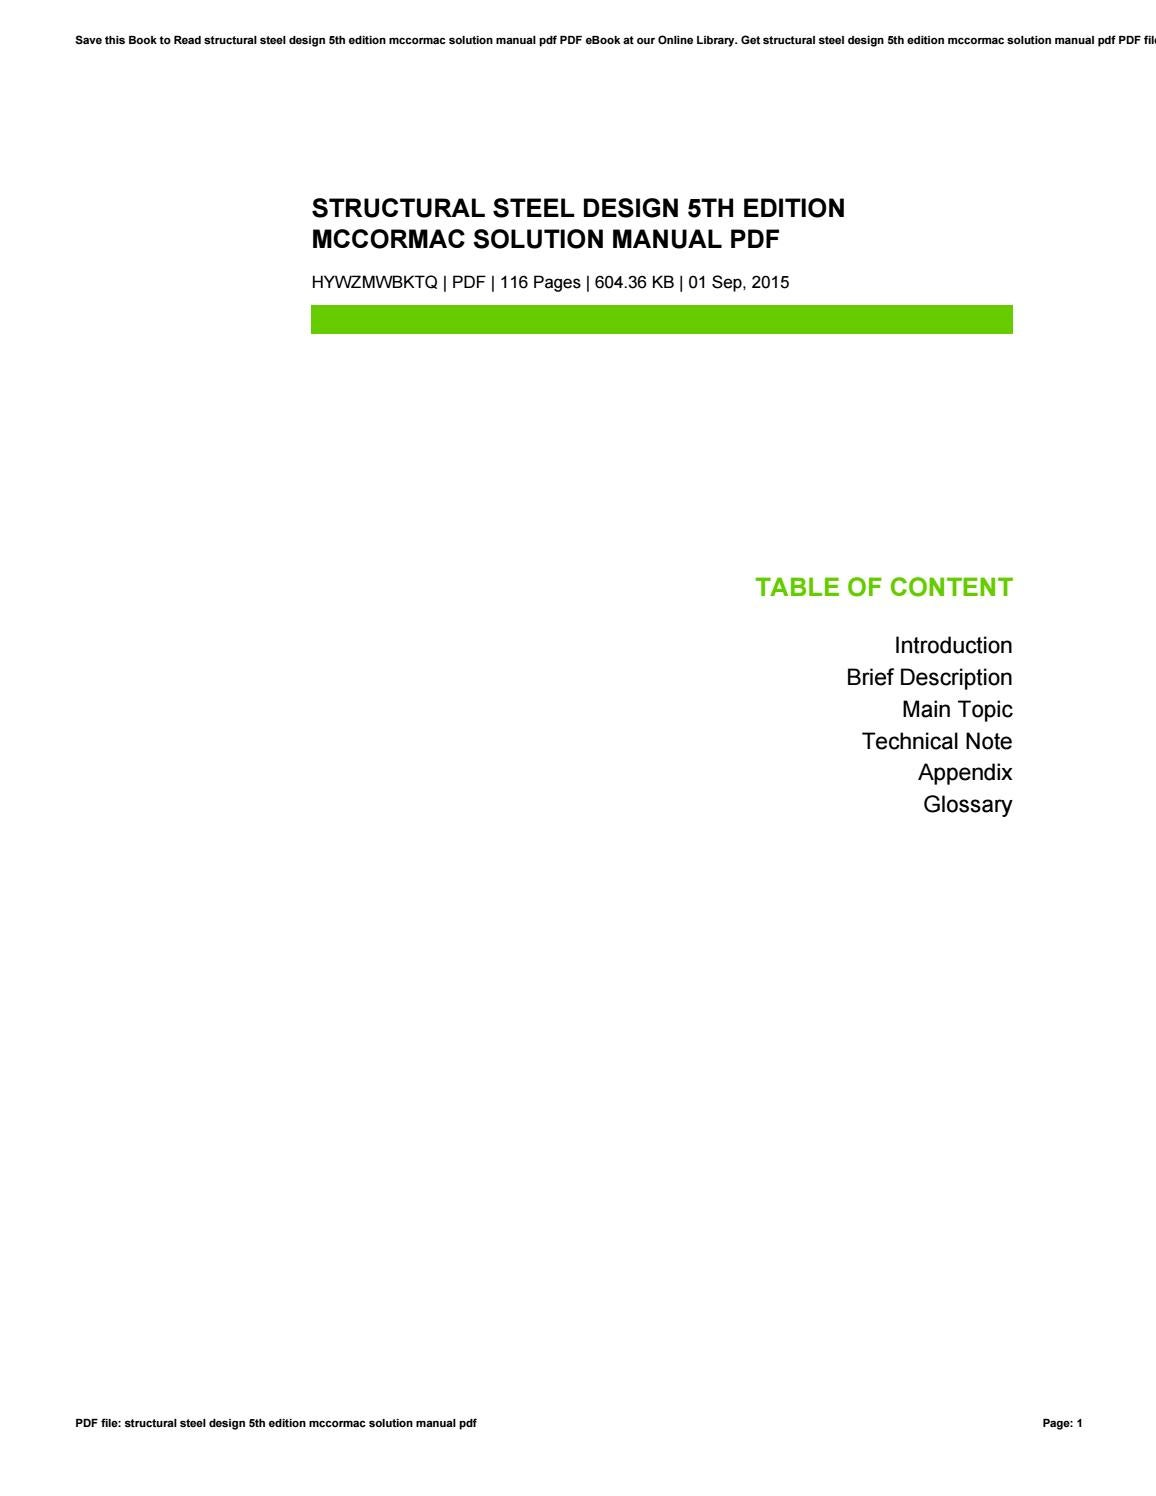 Structural steel design 5th edition mccormac solution manual pdf by  ClaudiaSegura20341 - issuu